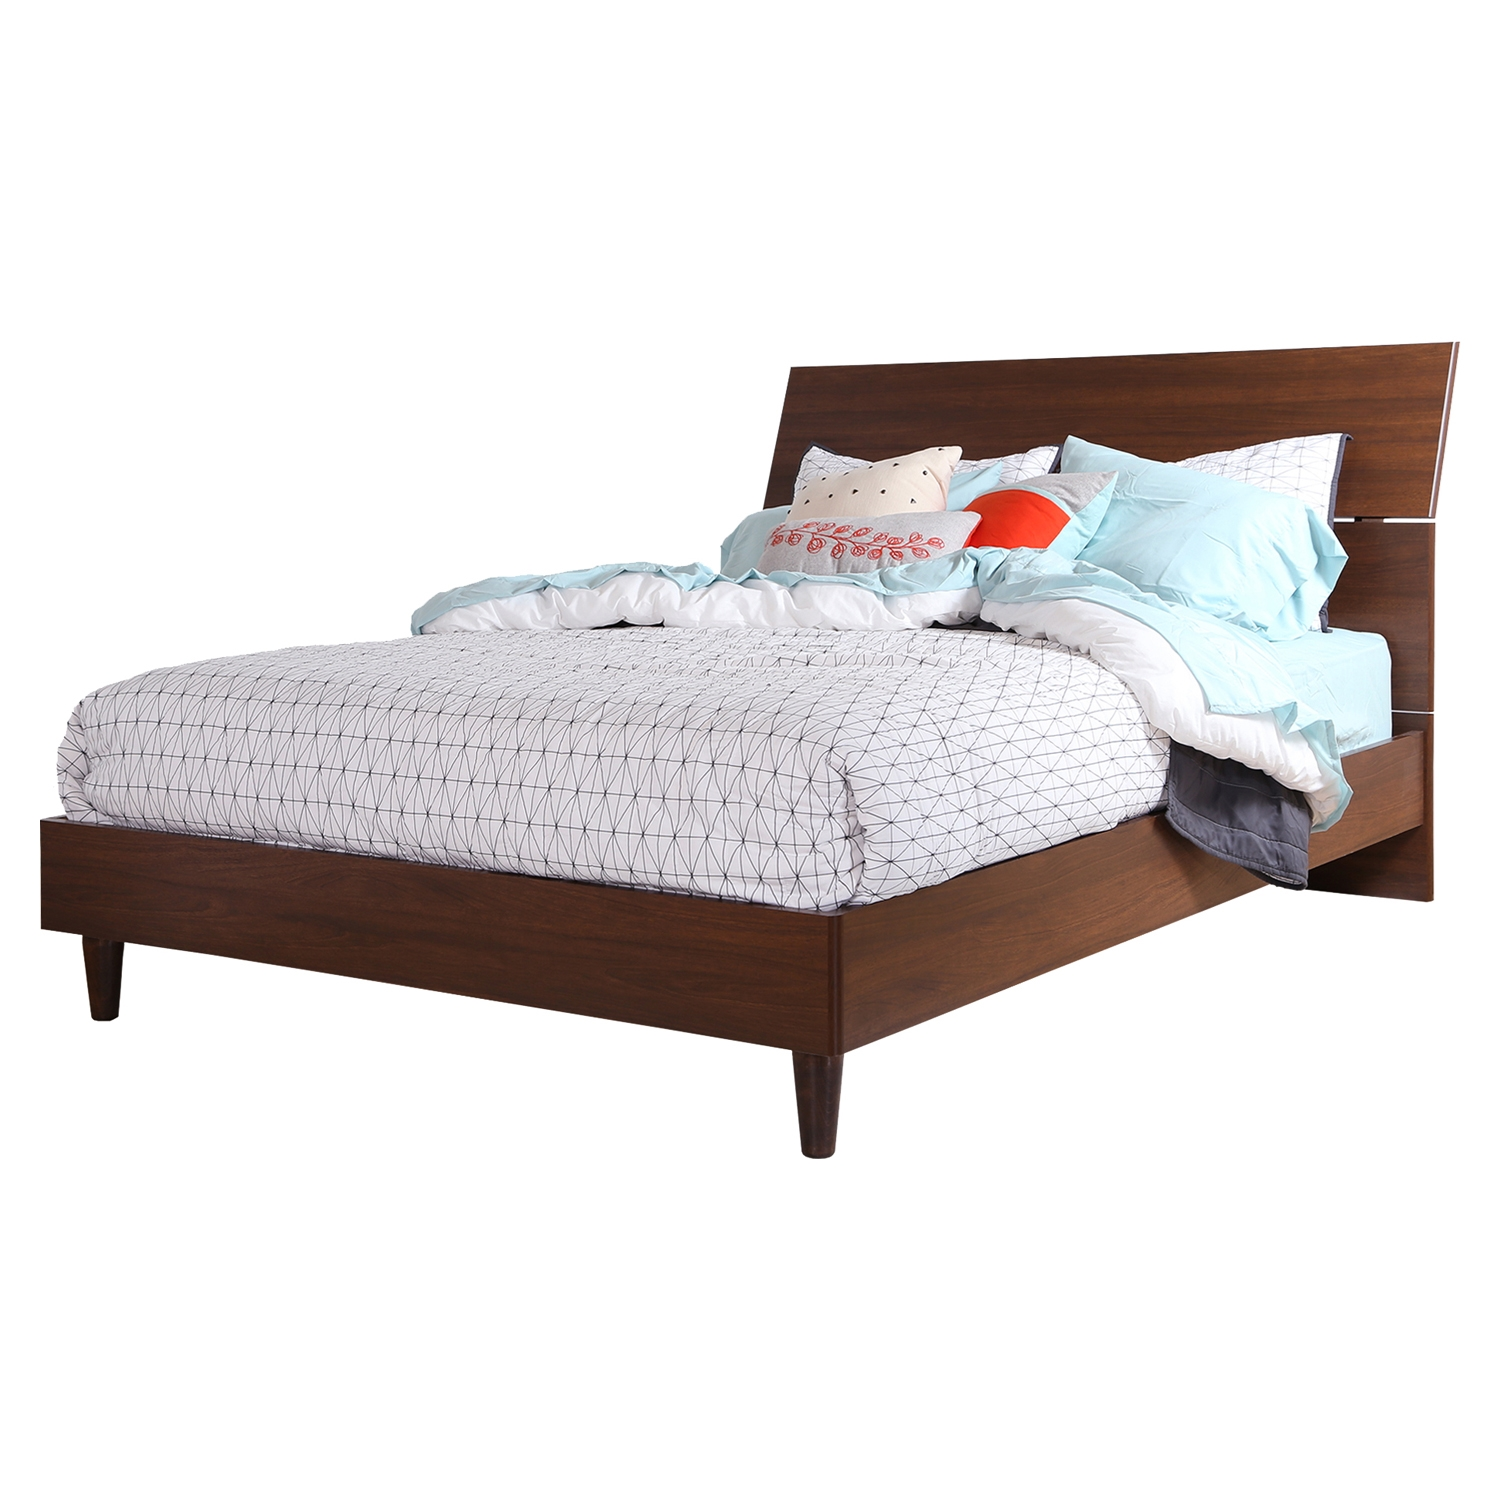 Olly Queen Platform Bed - Headboard, Brown Walnut - SS-3828282